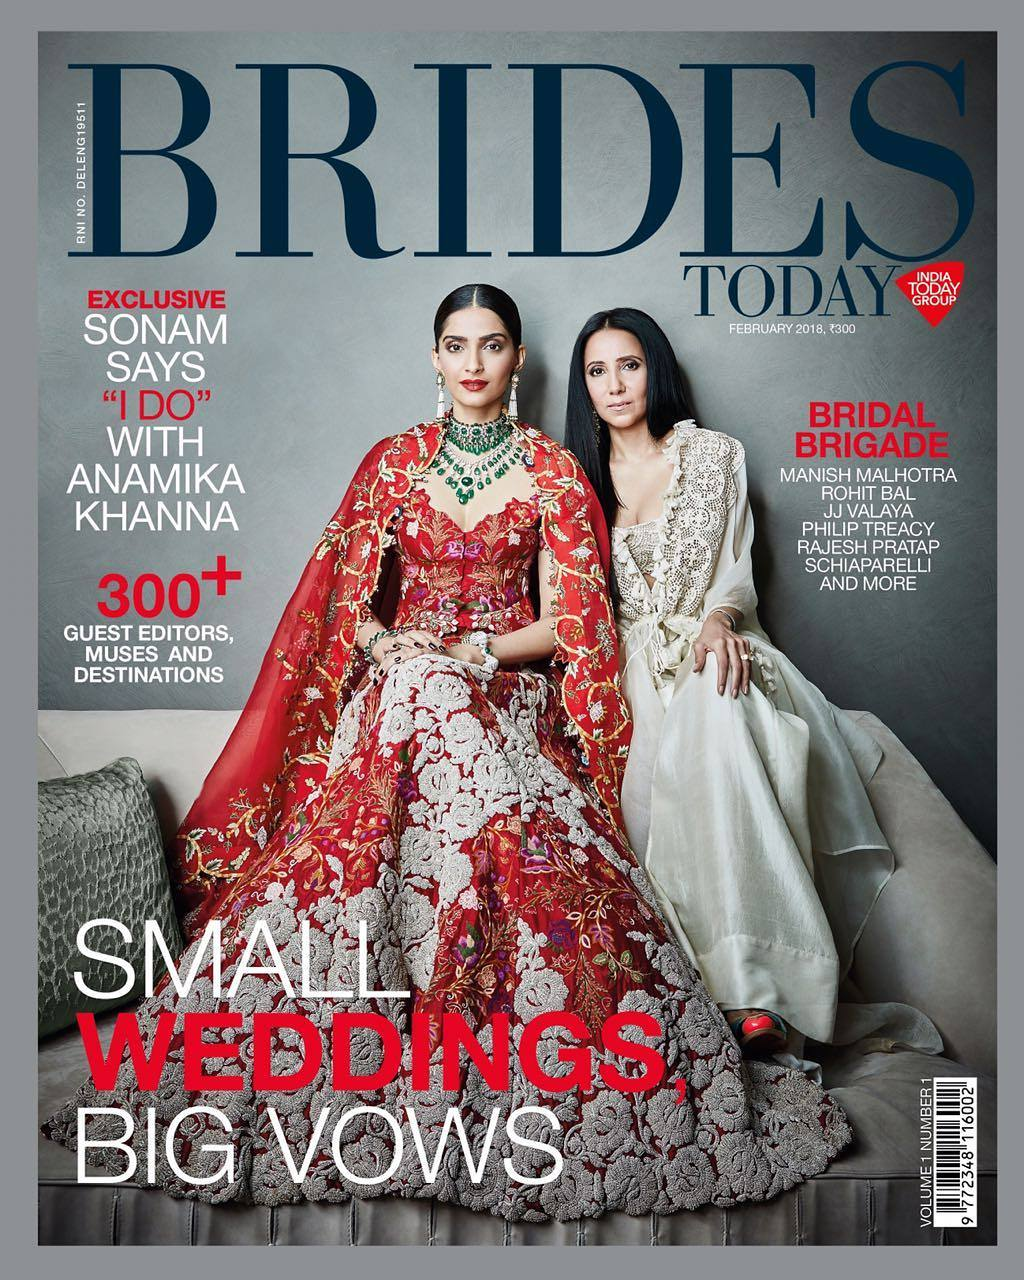 Brides Today: Is Sonam's Latest Bridal Shoot Hinting At